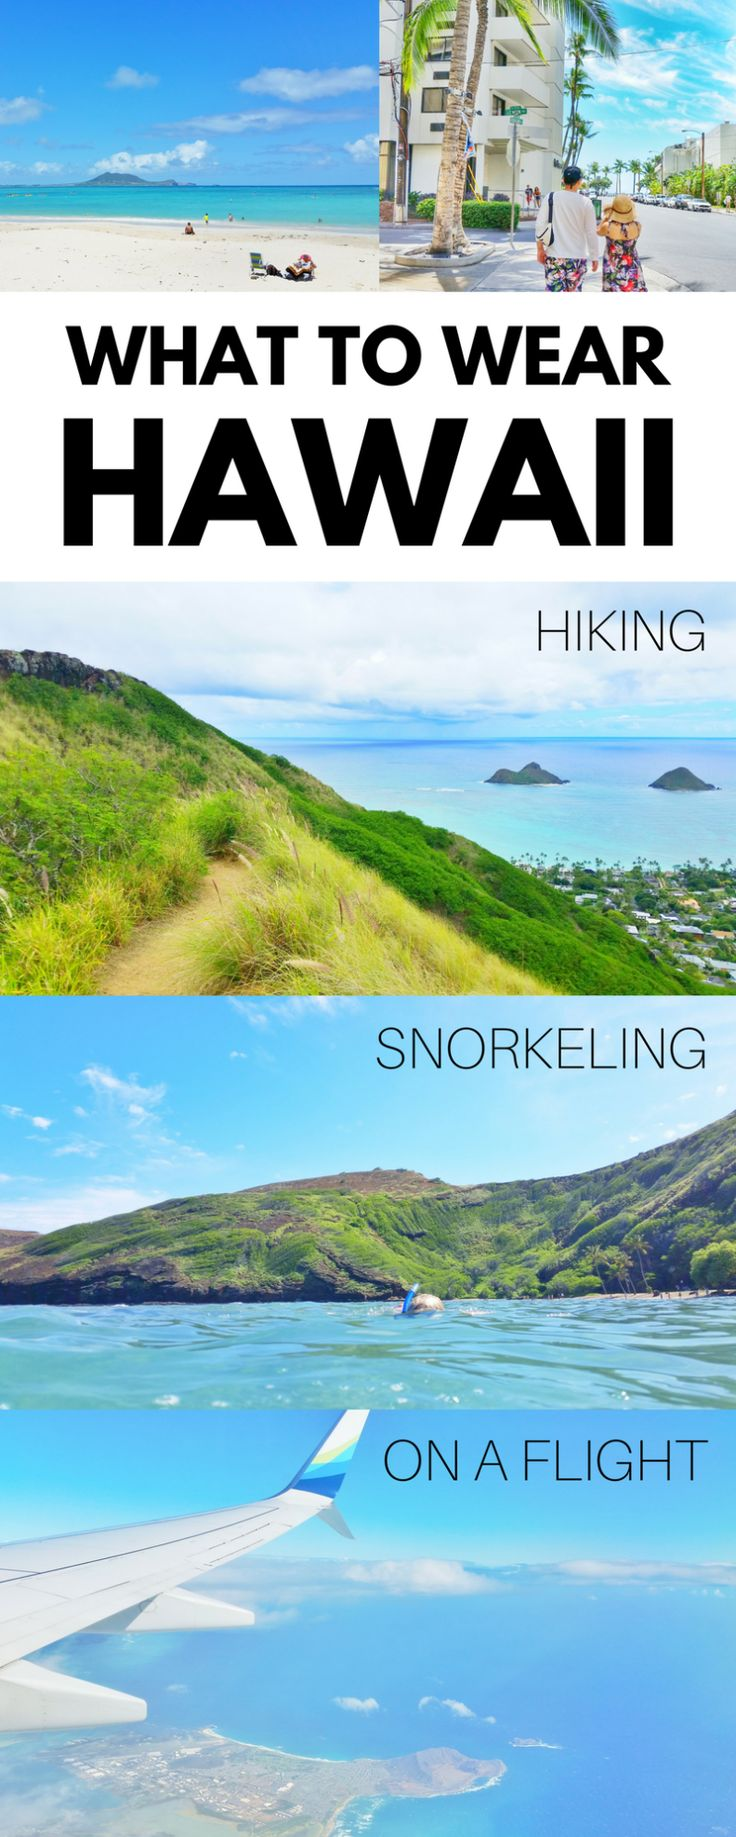 Hawaii packing tips with what to wear in Hawaii, what to pack for travel packing list, whether vacation is Oahu, Maui, Kauai, or Big Island! List of ideas, when planning on some things to do for outdoor travel destination in the USA as part of your world bucket list! Hiking, beach, snorkeling are budget activities free or cheap compared to some tours! What to wear to luau, on a flight to Hawaii, outfits, fitness active vacation.. #hawaii #oahu #maui #kauai #bigisland